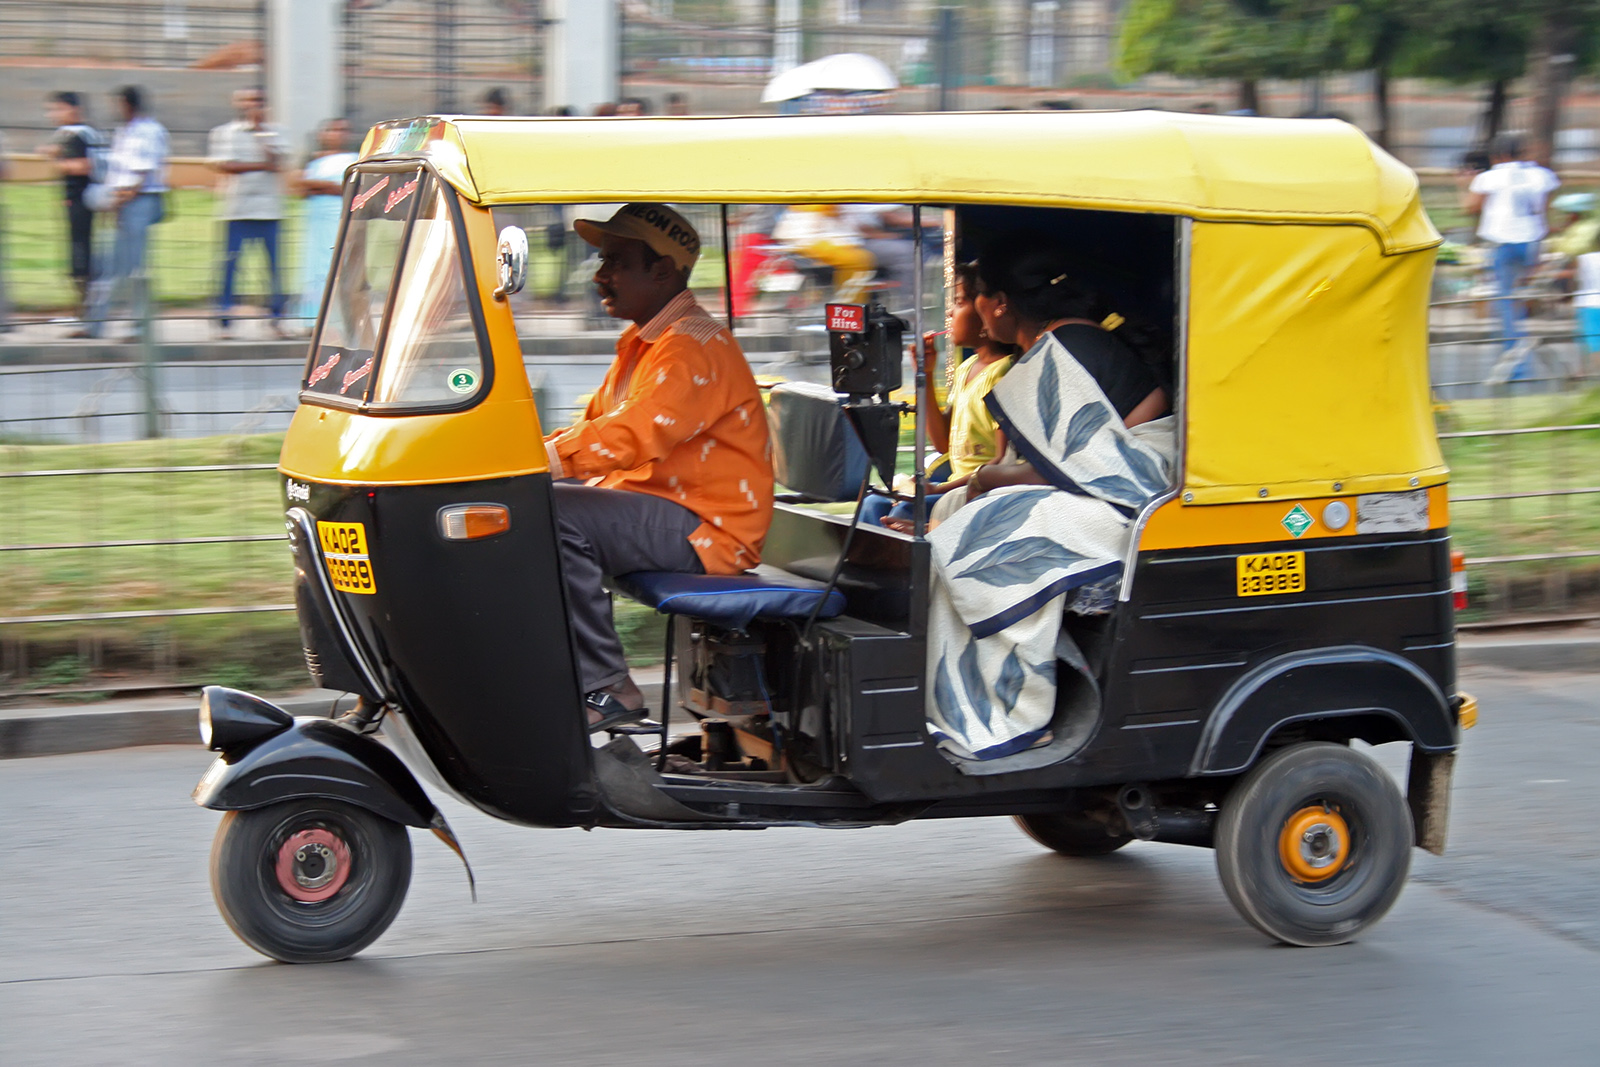 An Auto Driver Returned Cash and Jewelry Worth Rupees One Lakh